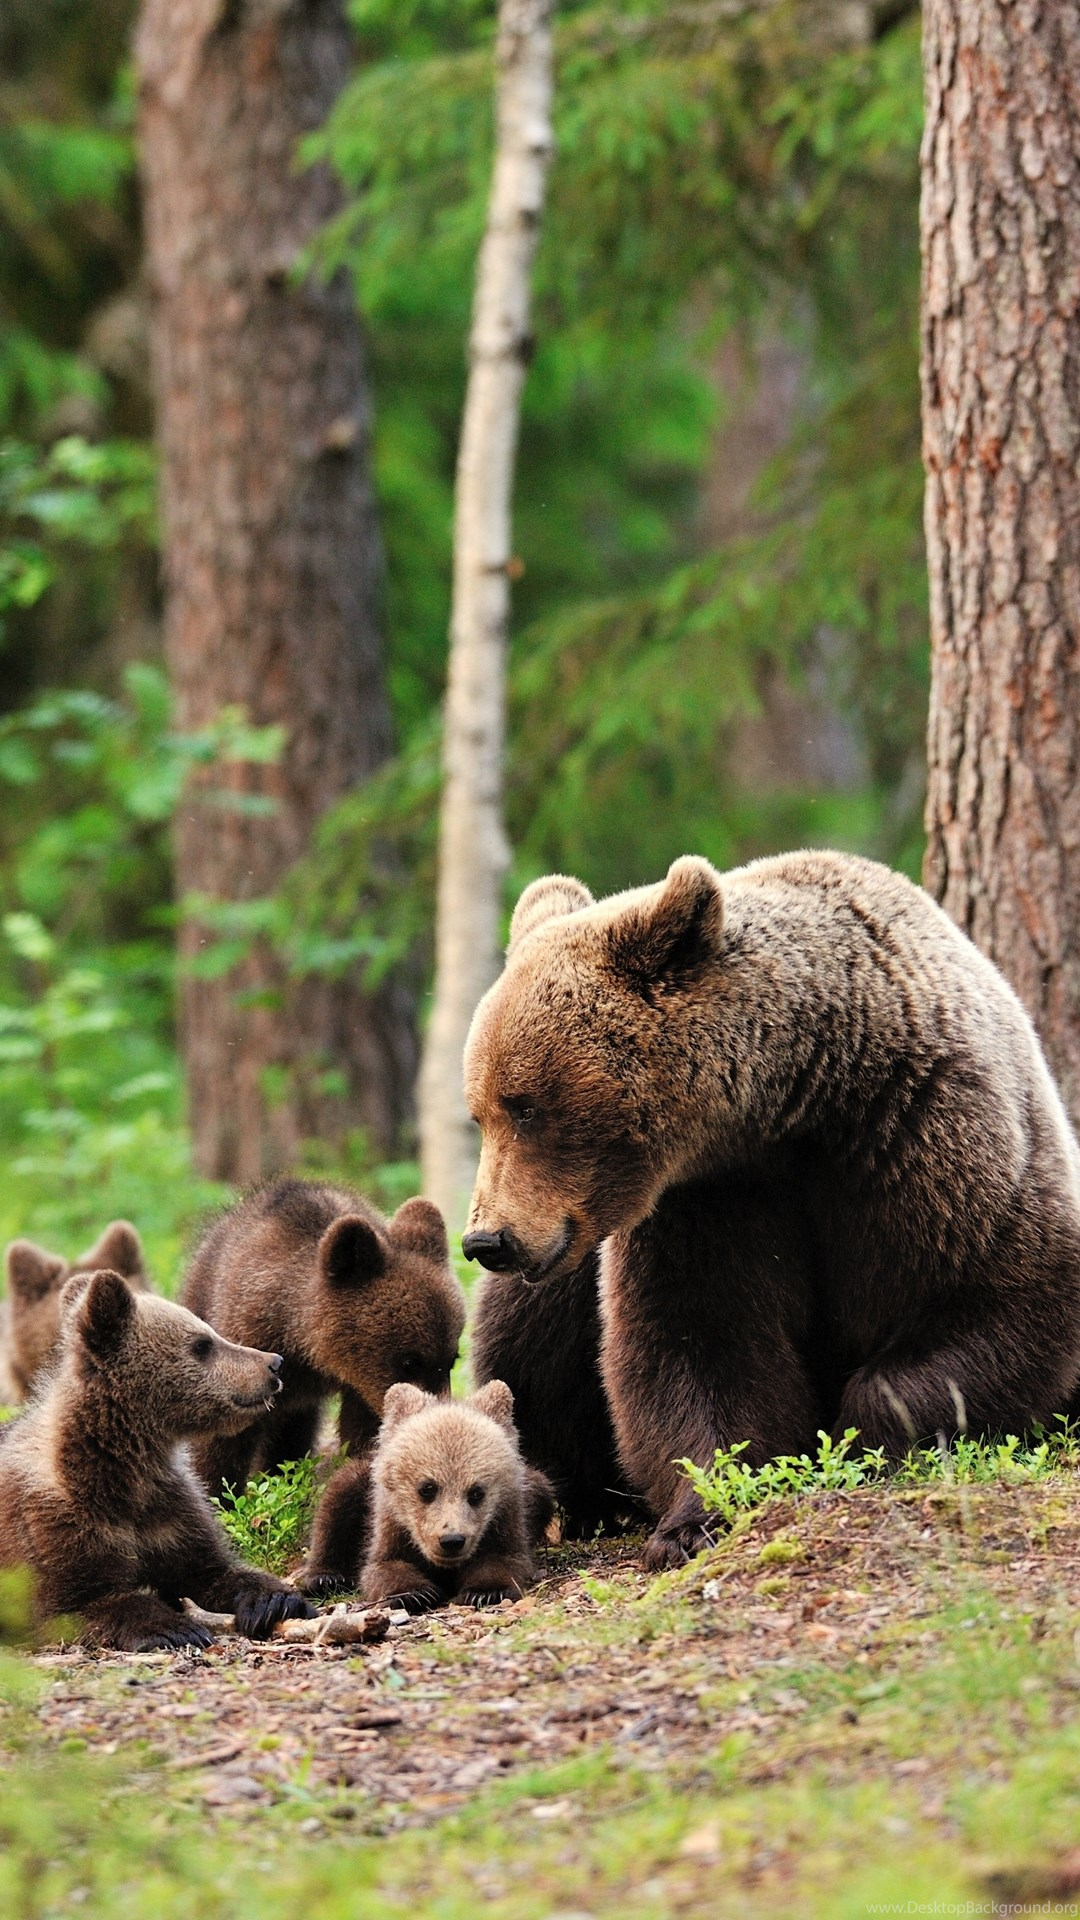 Cute Teddy Bear And Love Wallpapers Download For Mobile Bear Bears Forest Trees Baby Cub Cubs Mother Family Cute